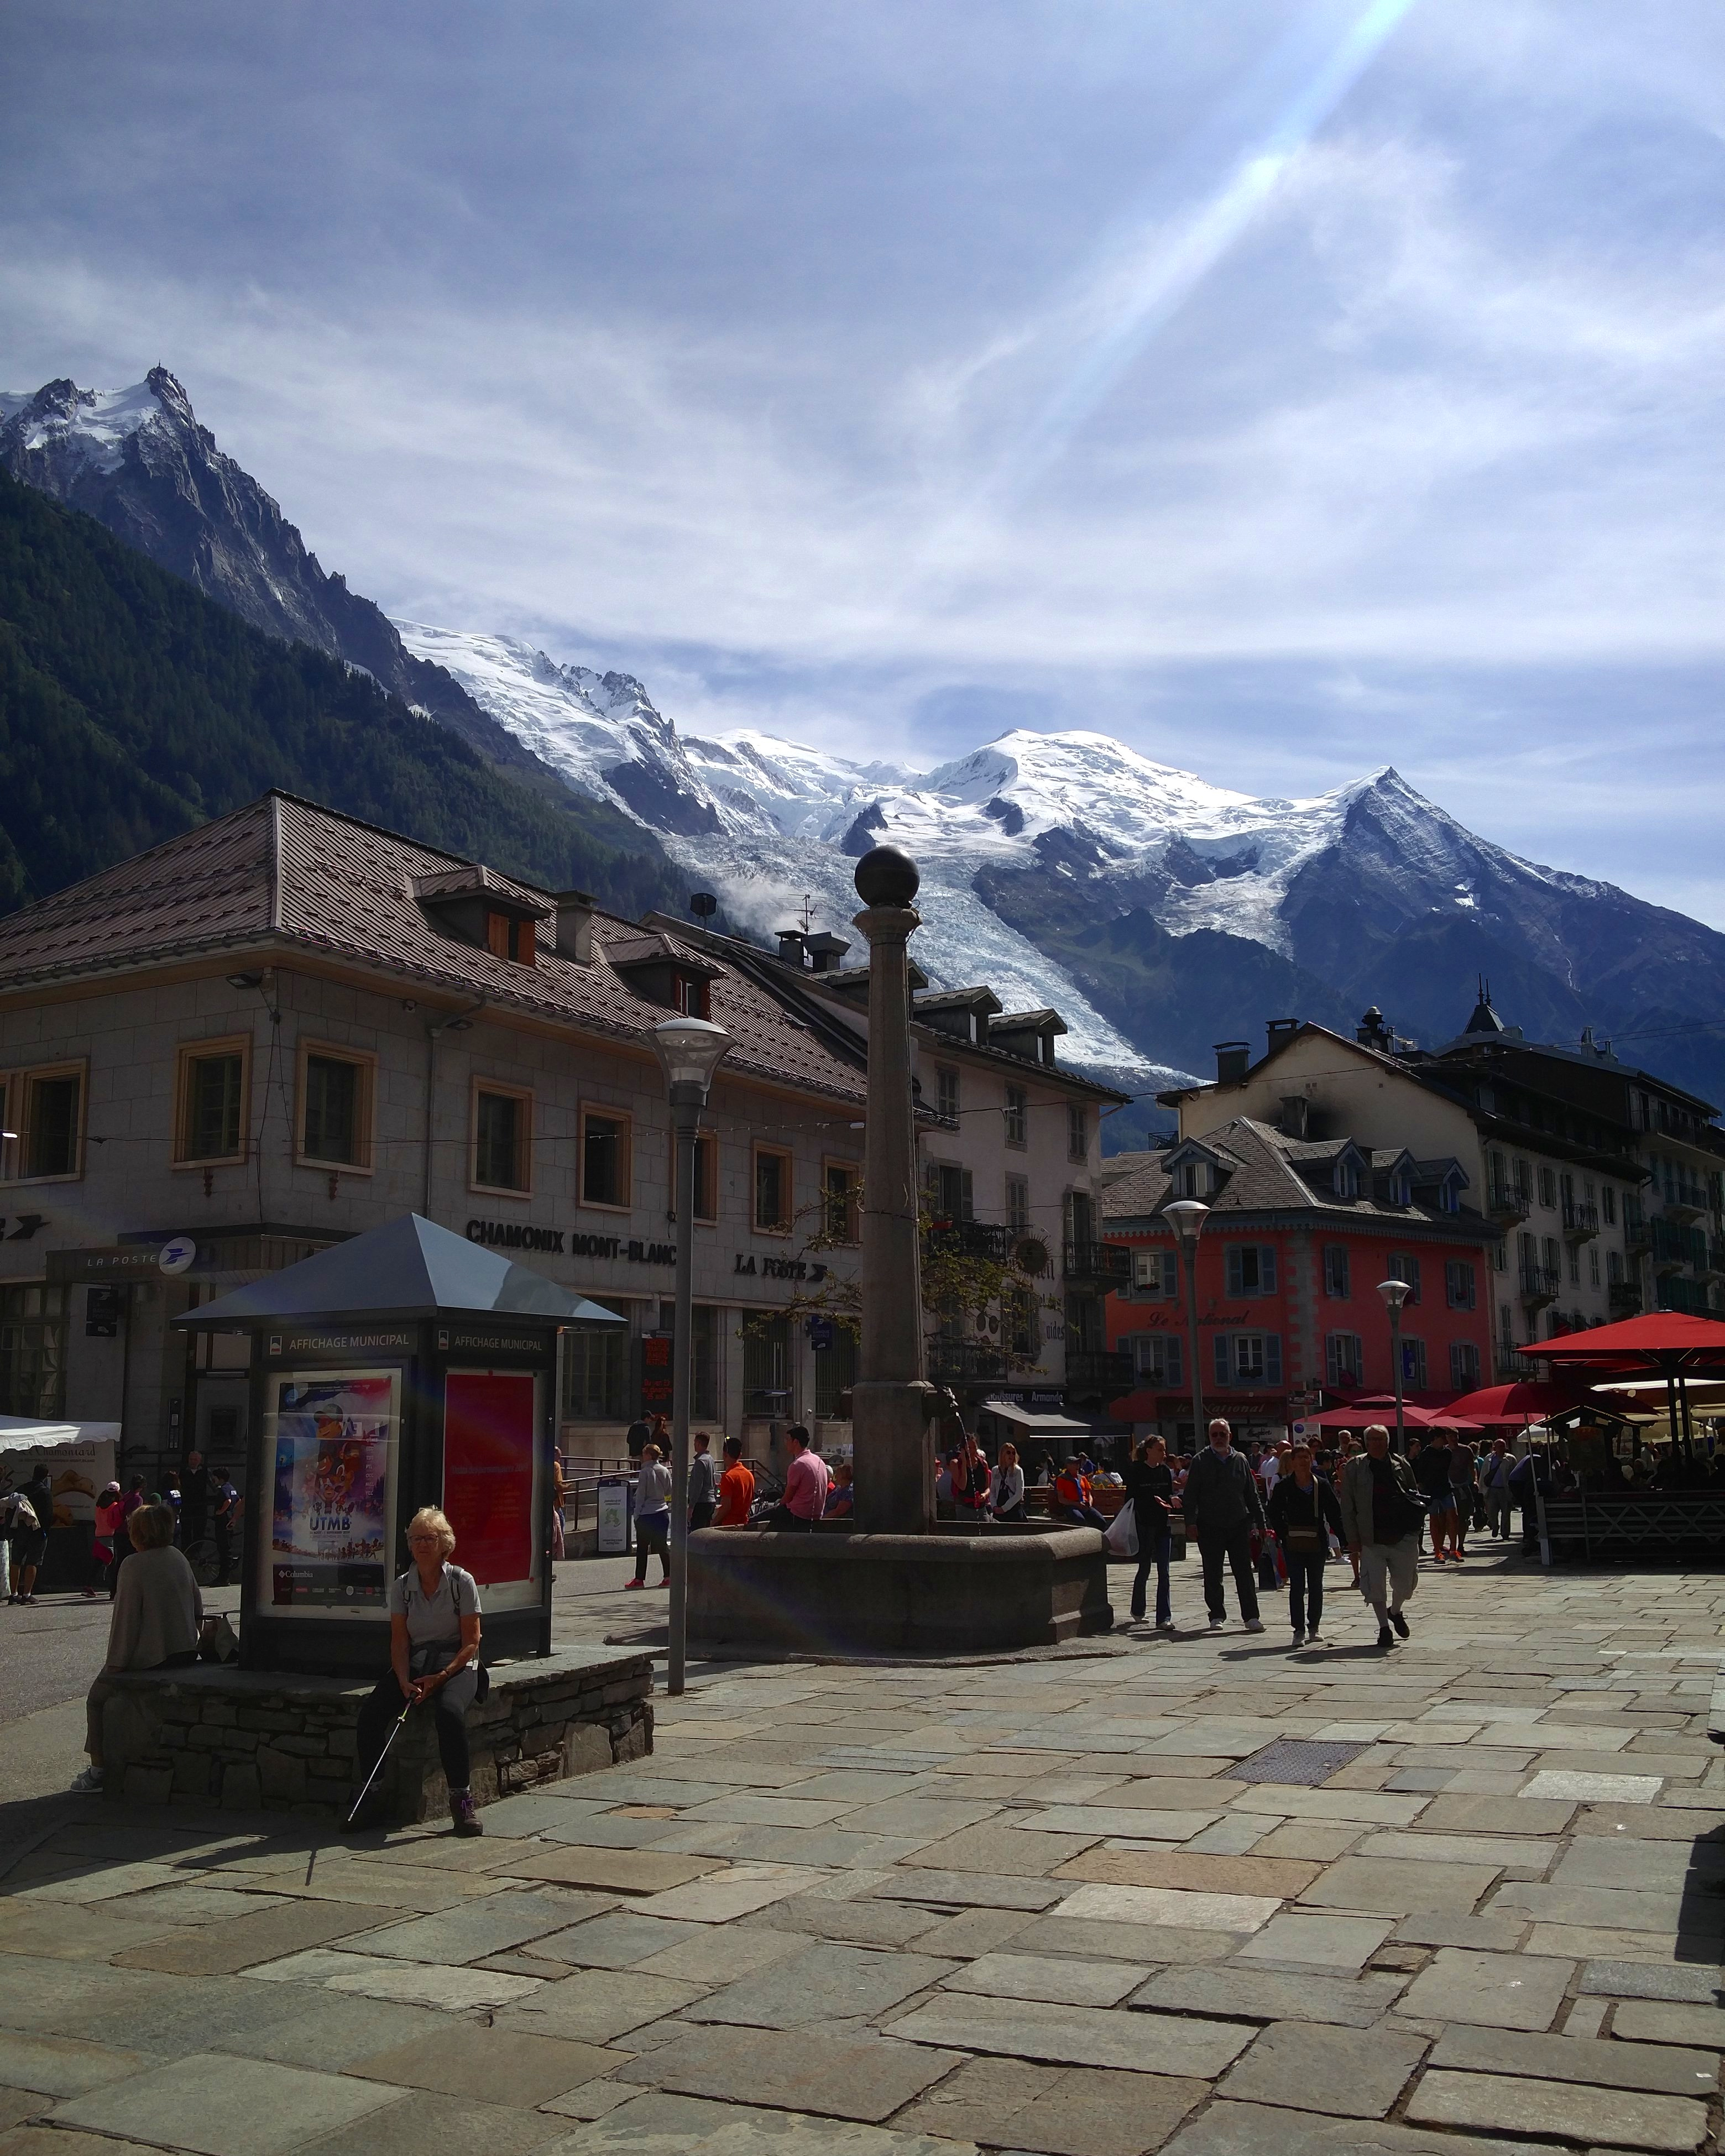 Centre of Chamonix Mont - Blanc. Main tourist street bustling with tourists, climbers, walkers and adventure enthusiasts.